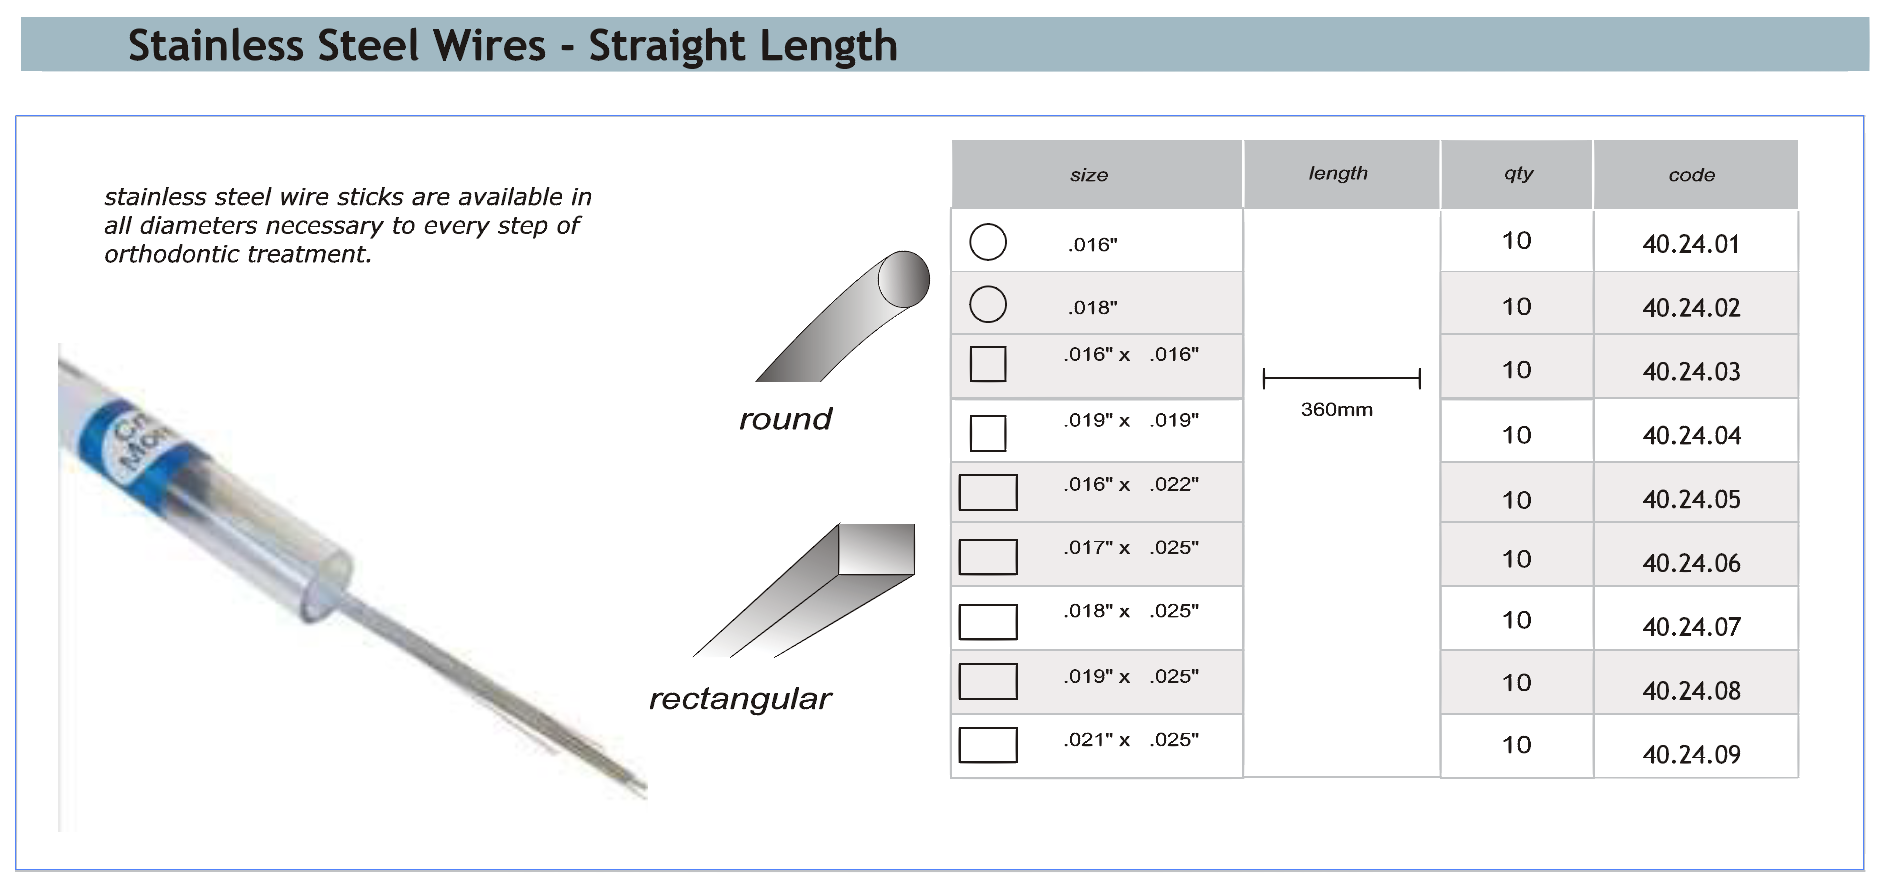 stainless steel wire straight length